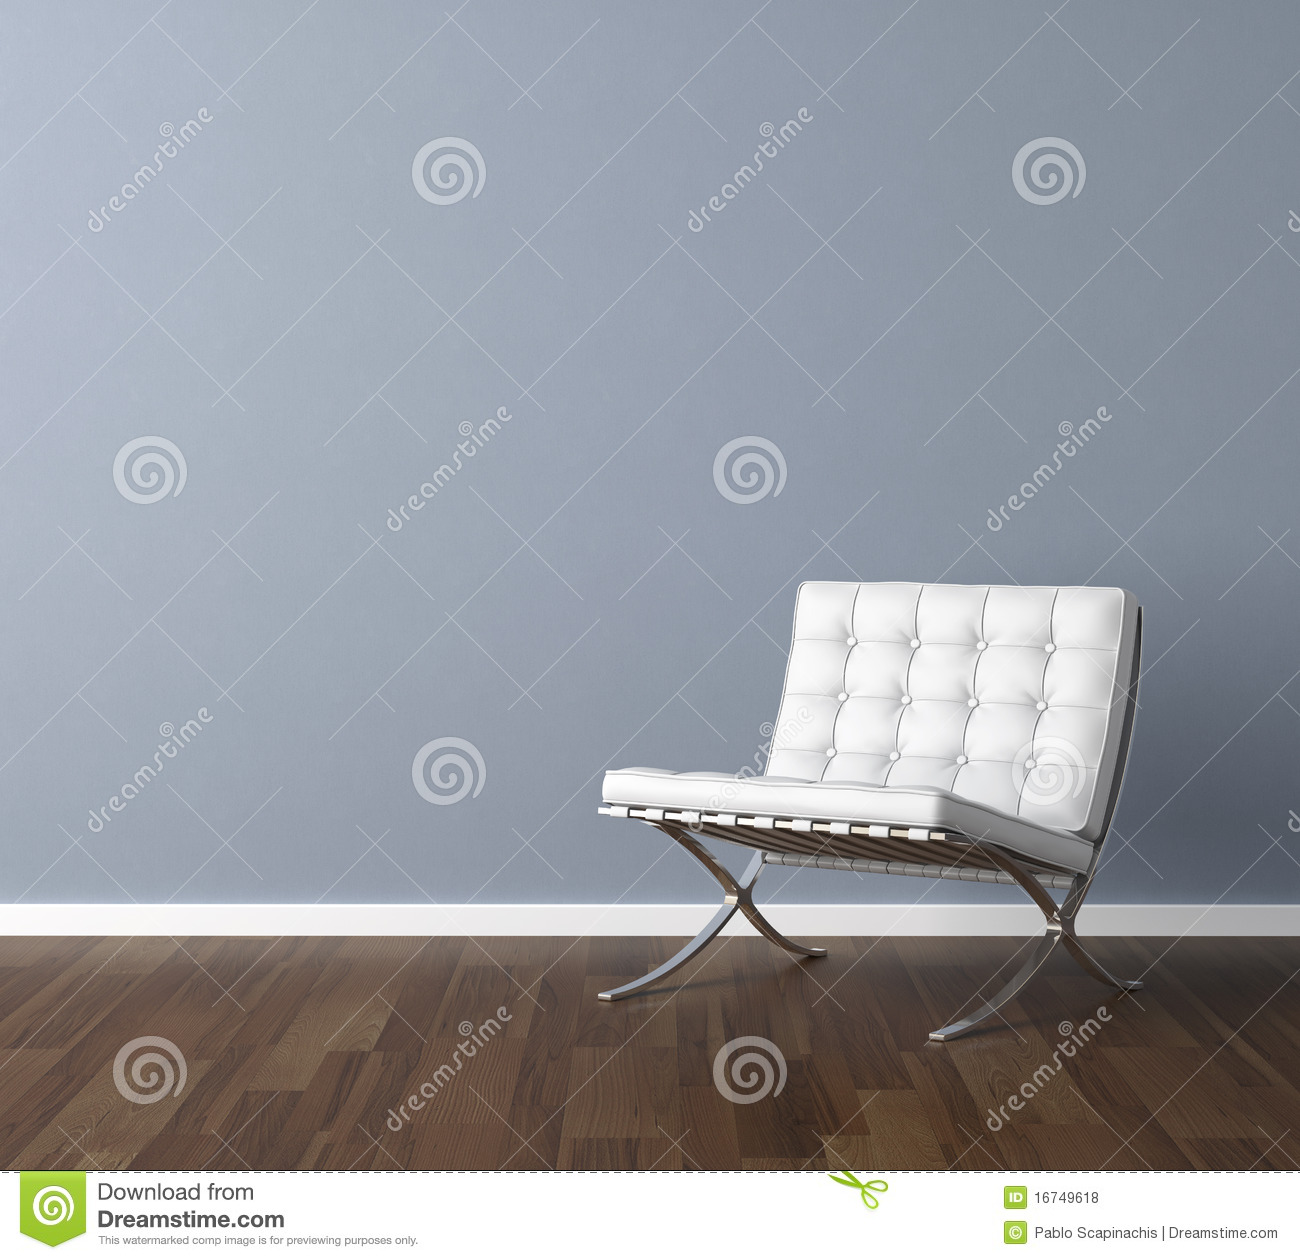 Interior design scene with a modern white chair and lamp on blue wall